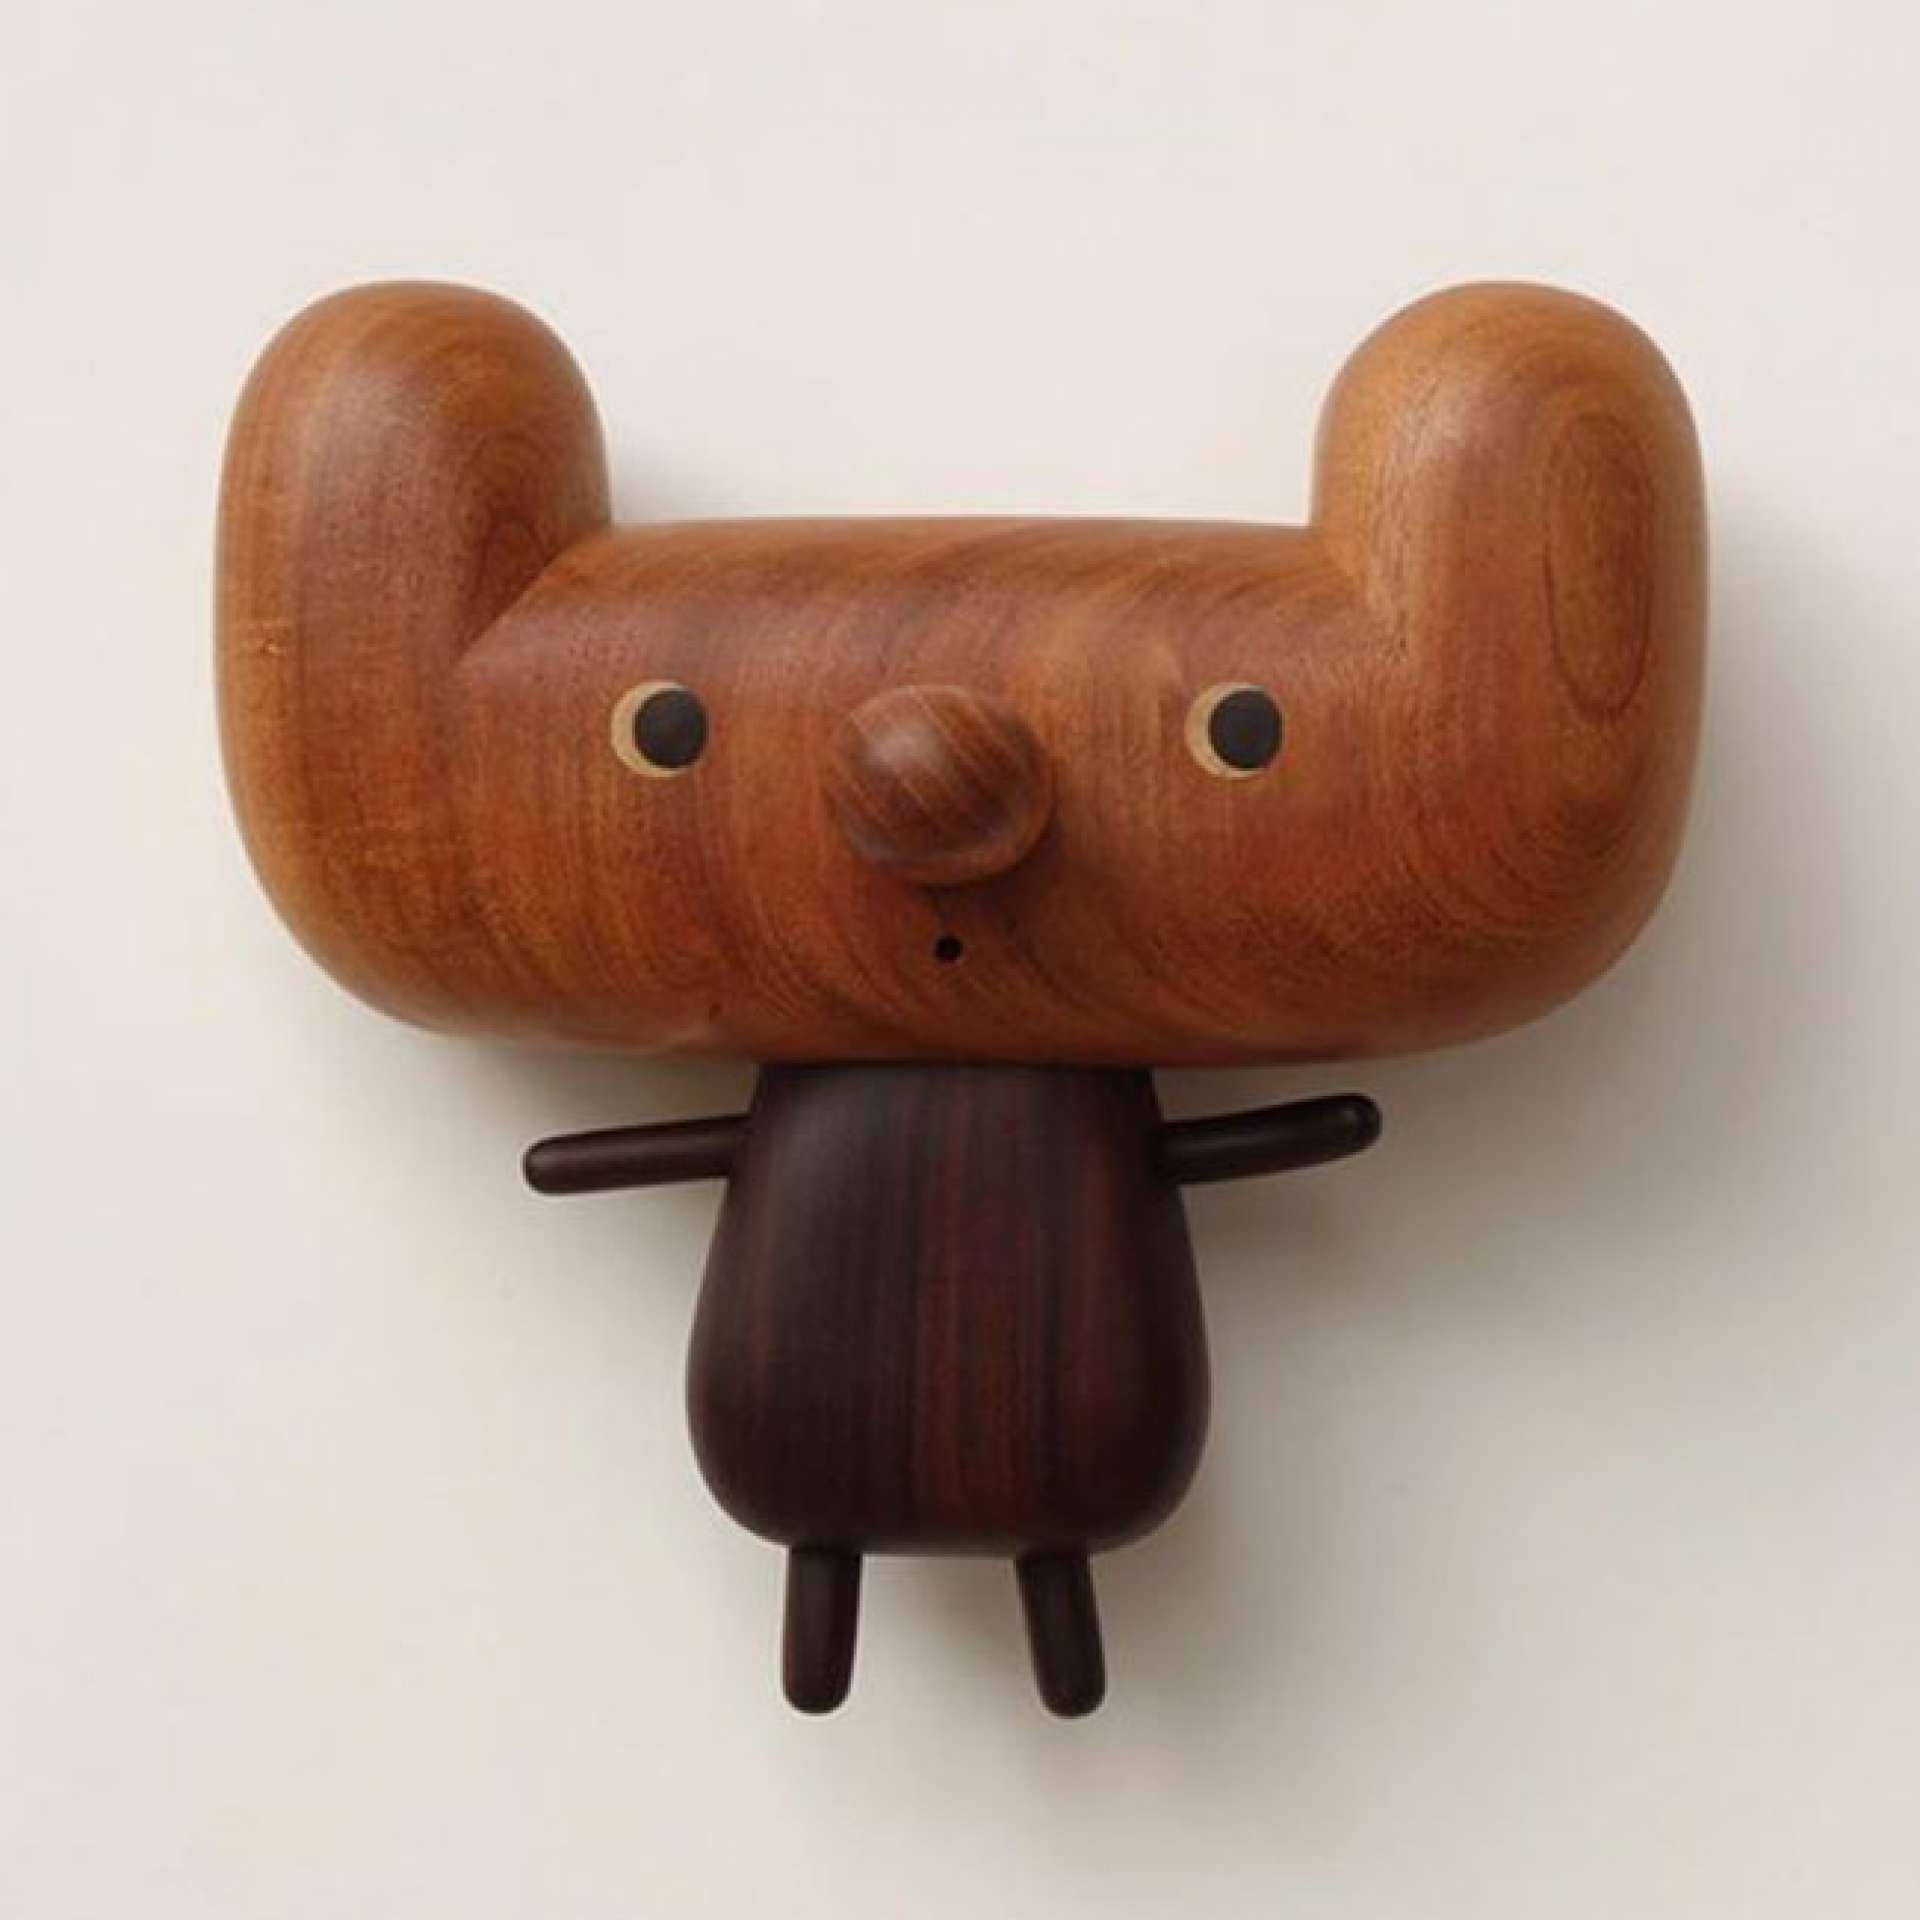 Wooden Quirky Cartoon & Vases by Yen Jui-Lin